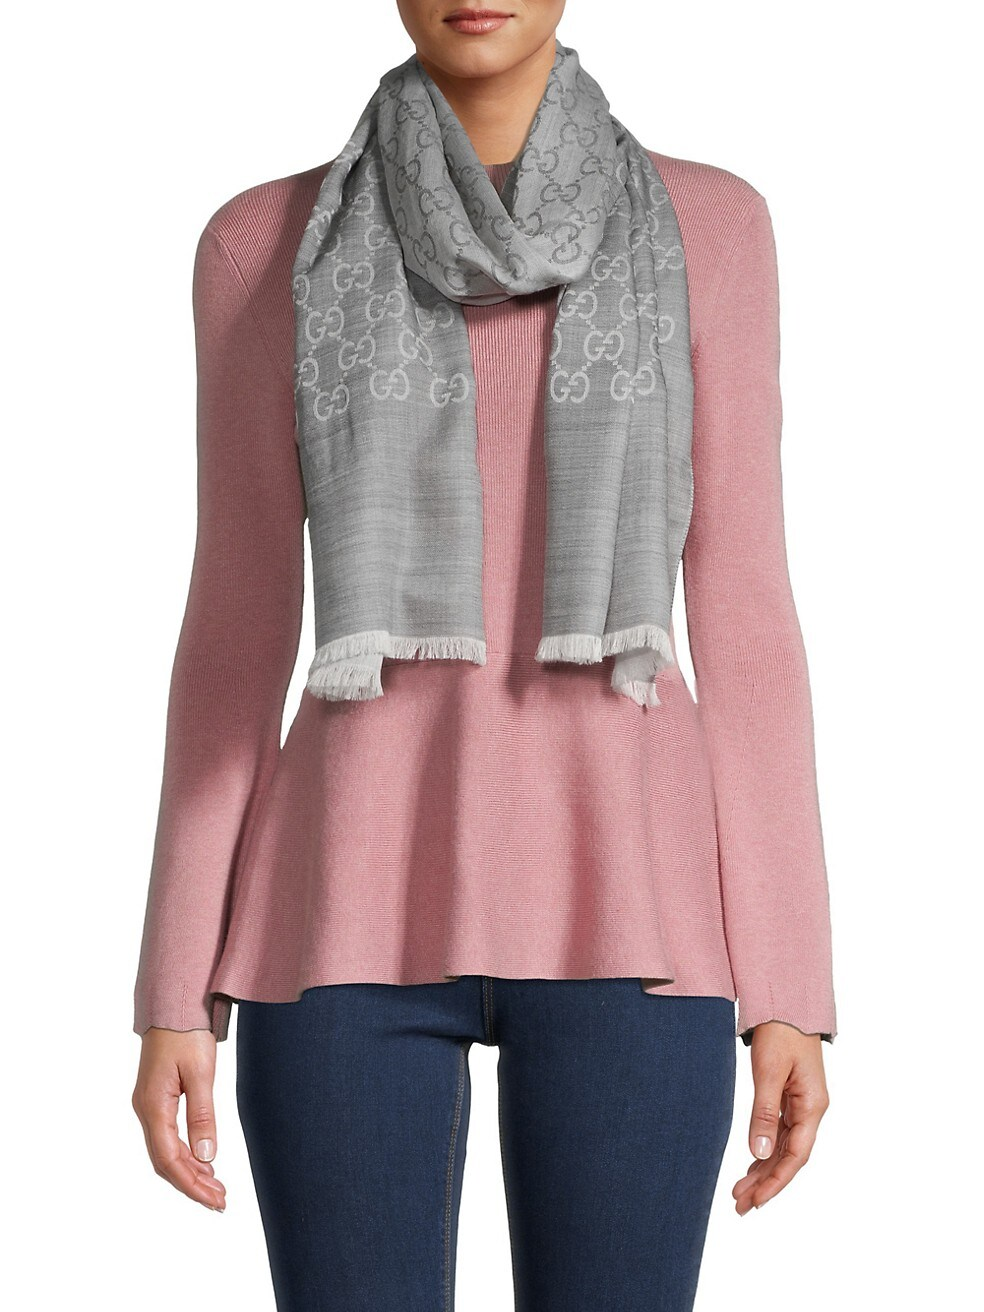 Saks Off 5th: Shop best sellers at up to 75% OFF